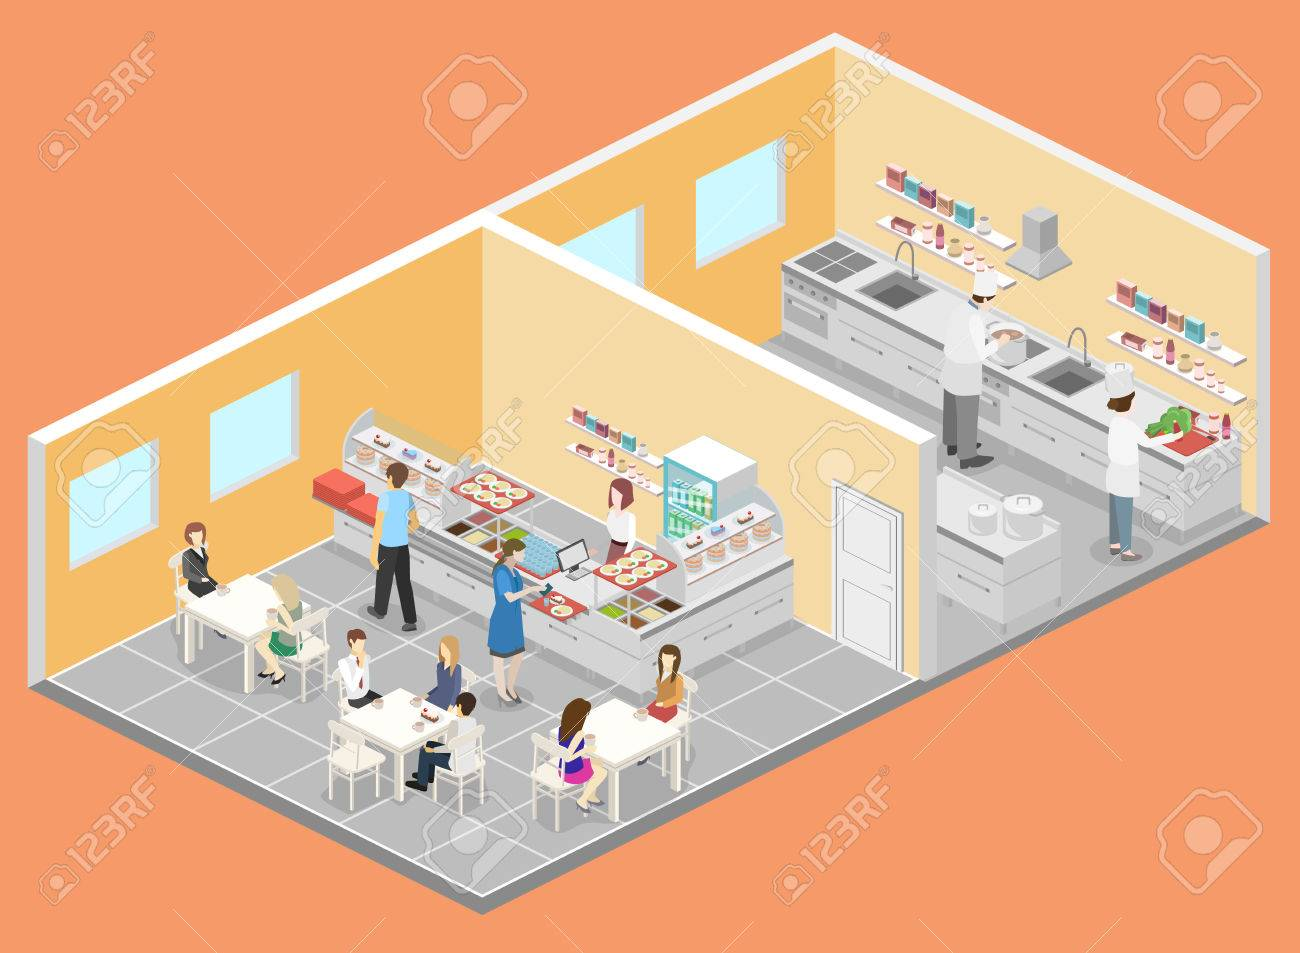 Isometric Flat 3d Interior Of Cafe Canteen And Restaurant Kitchen Royalty Free Cliparts Vectors And Stock Illustration Image 83384769